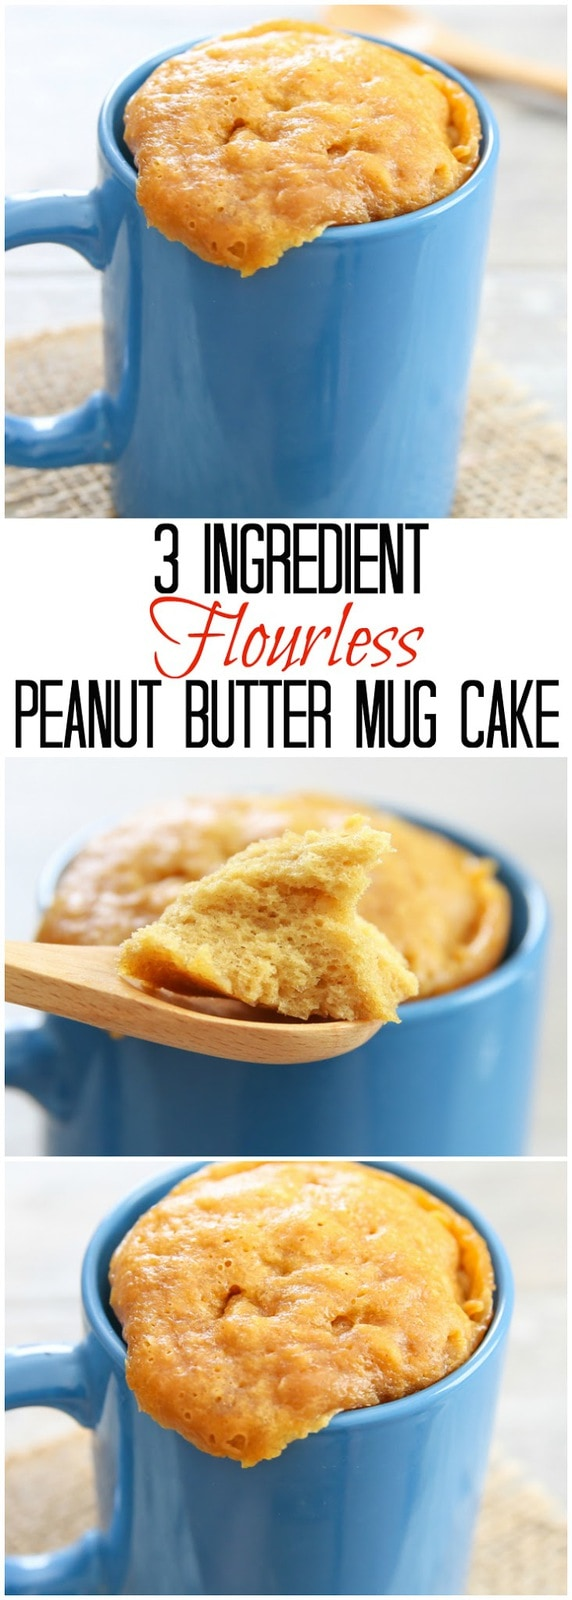 3 Ingredient Flourless Peanut Butter Mug Cake. Easy and ready in 5 minutes and you won't believe it is flourless and gluten-free!